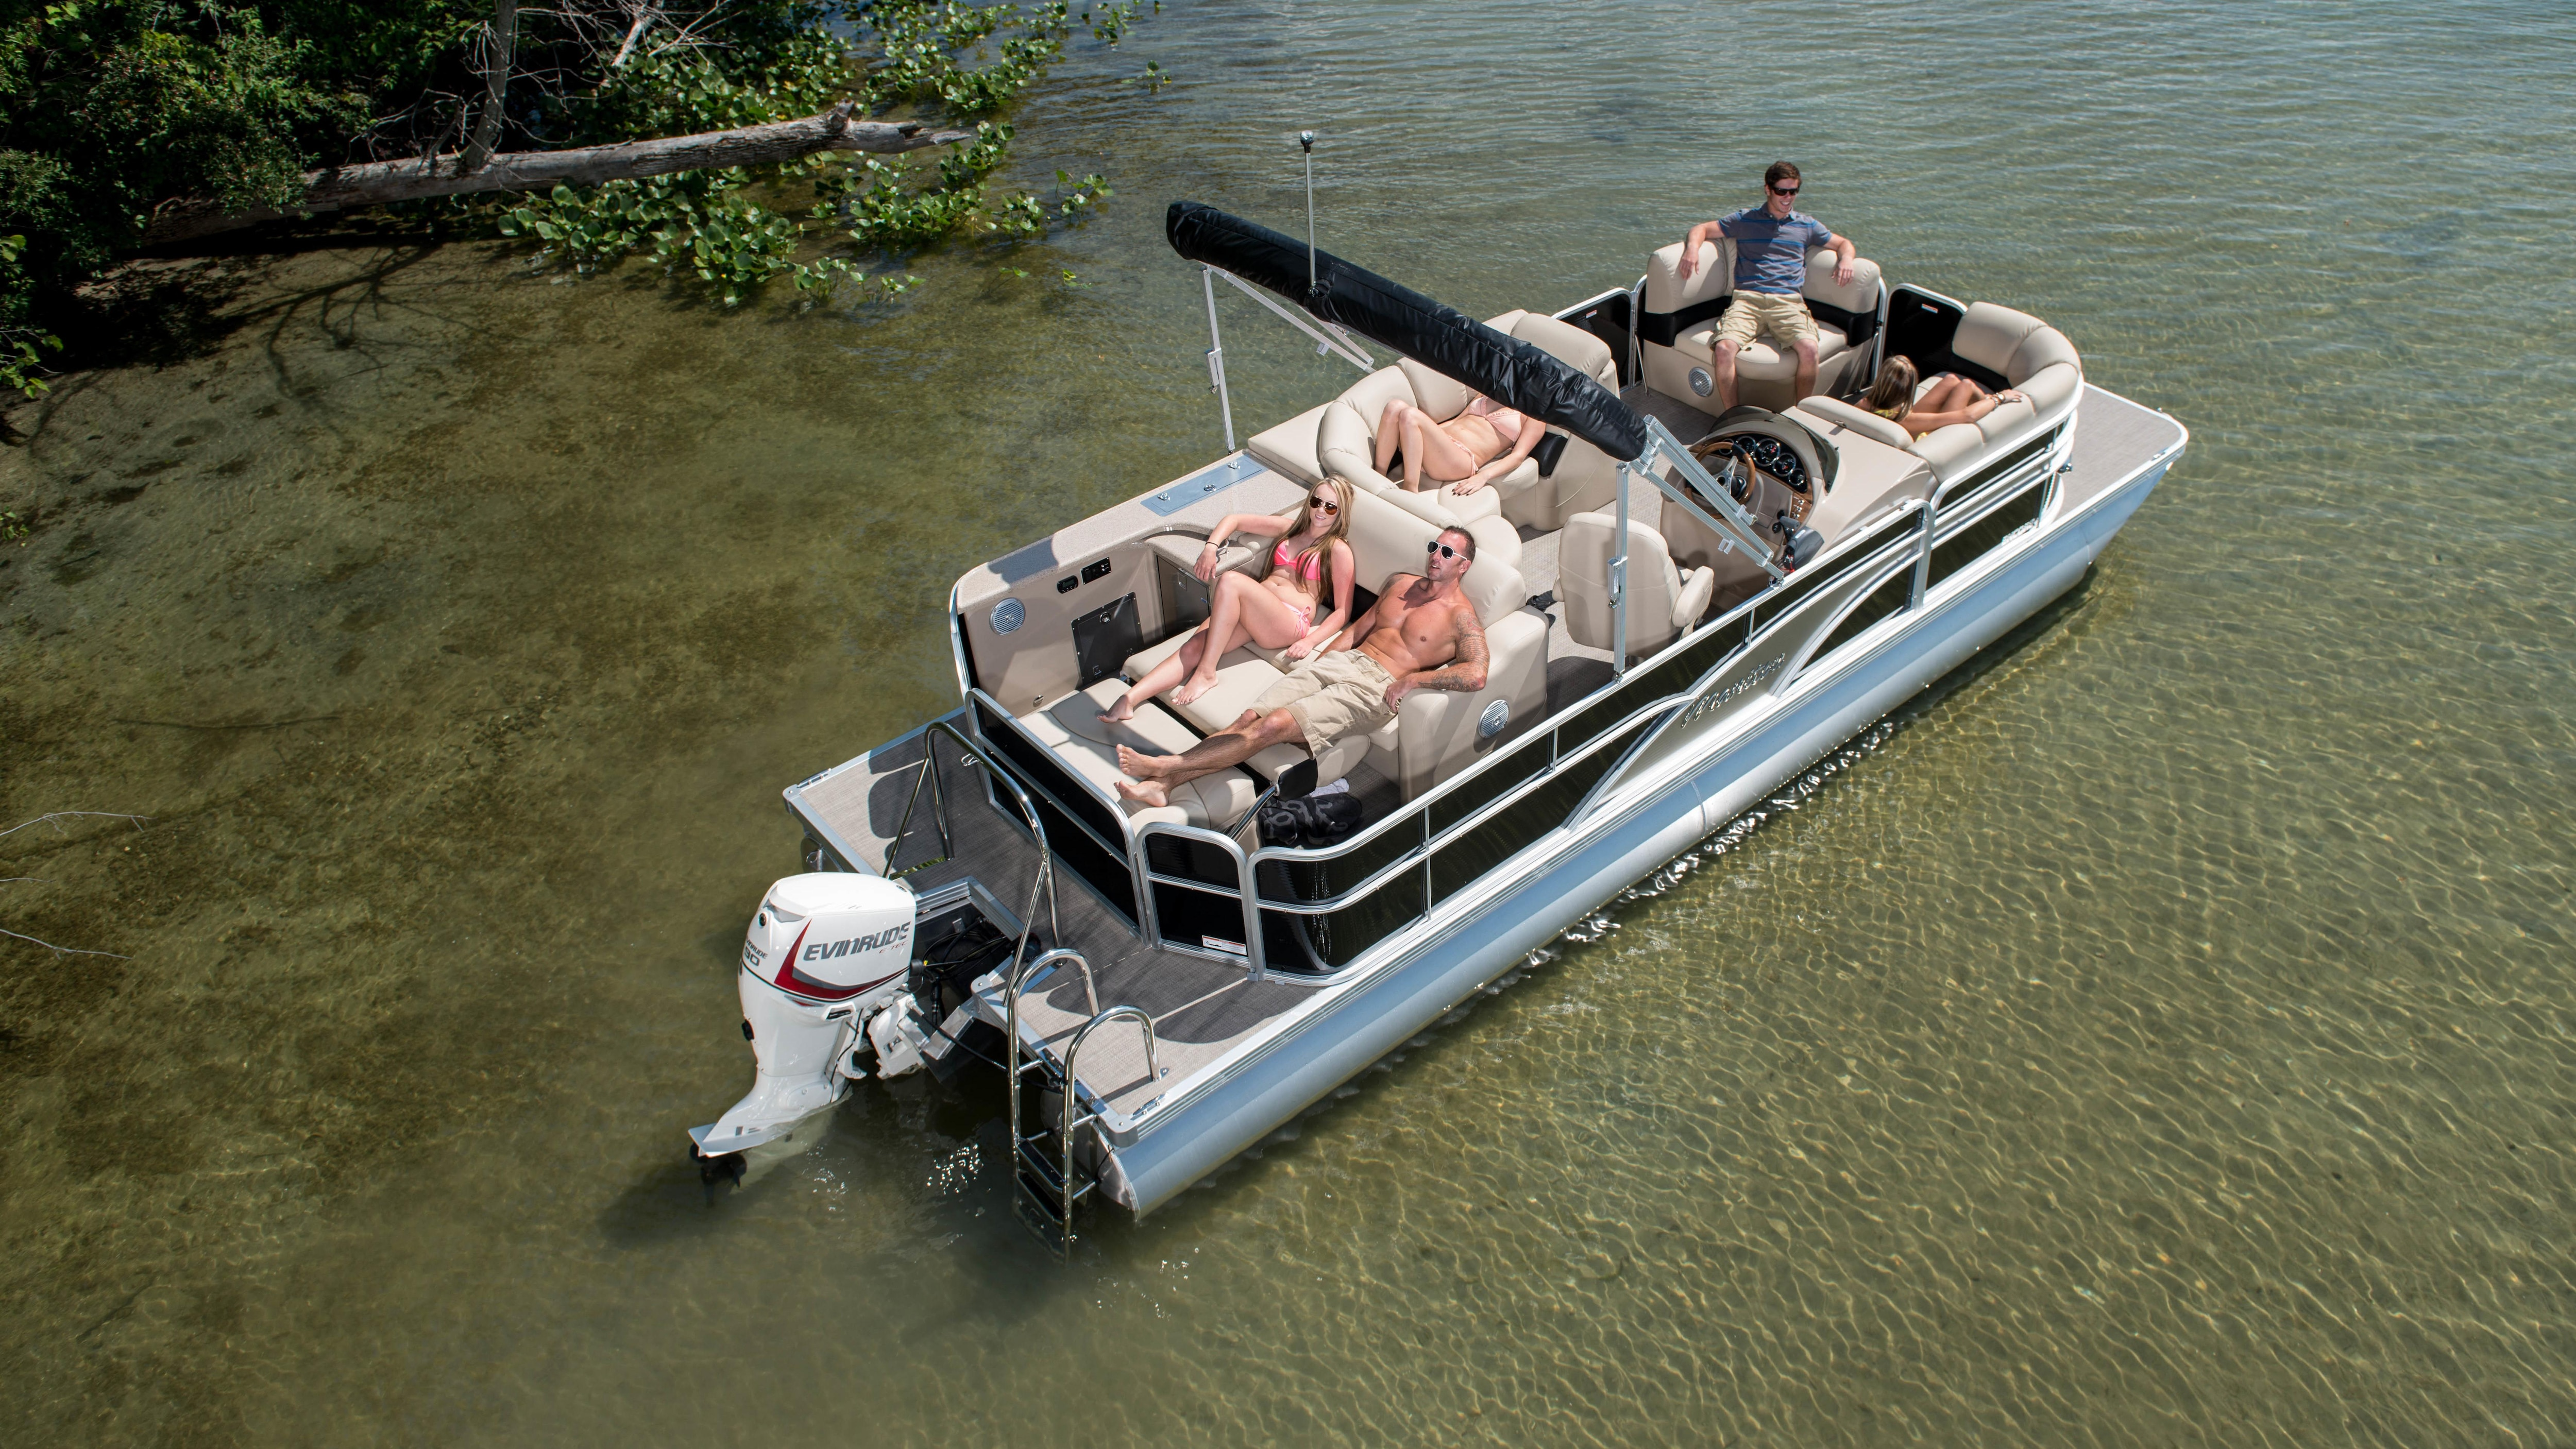 Group of friends relaxing on a pontoon